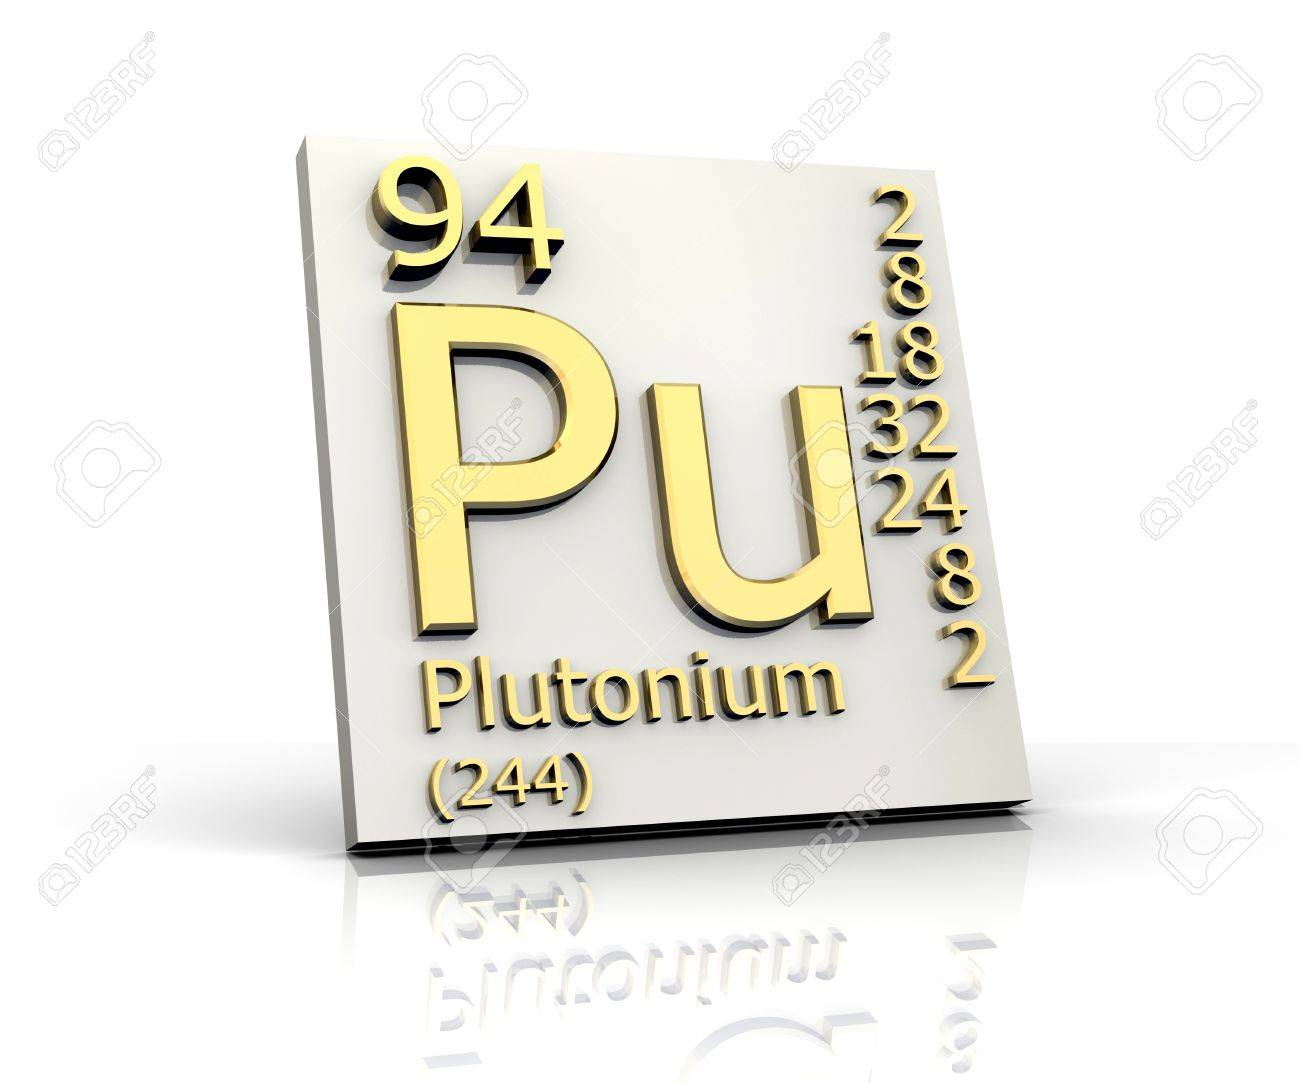 Symbol for nickel on periodic table gallery periodic table images plutonium symbol periodic table image collections periodic table plutonium symbol periodic table images periodic table images gamestrikefo Image collections